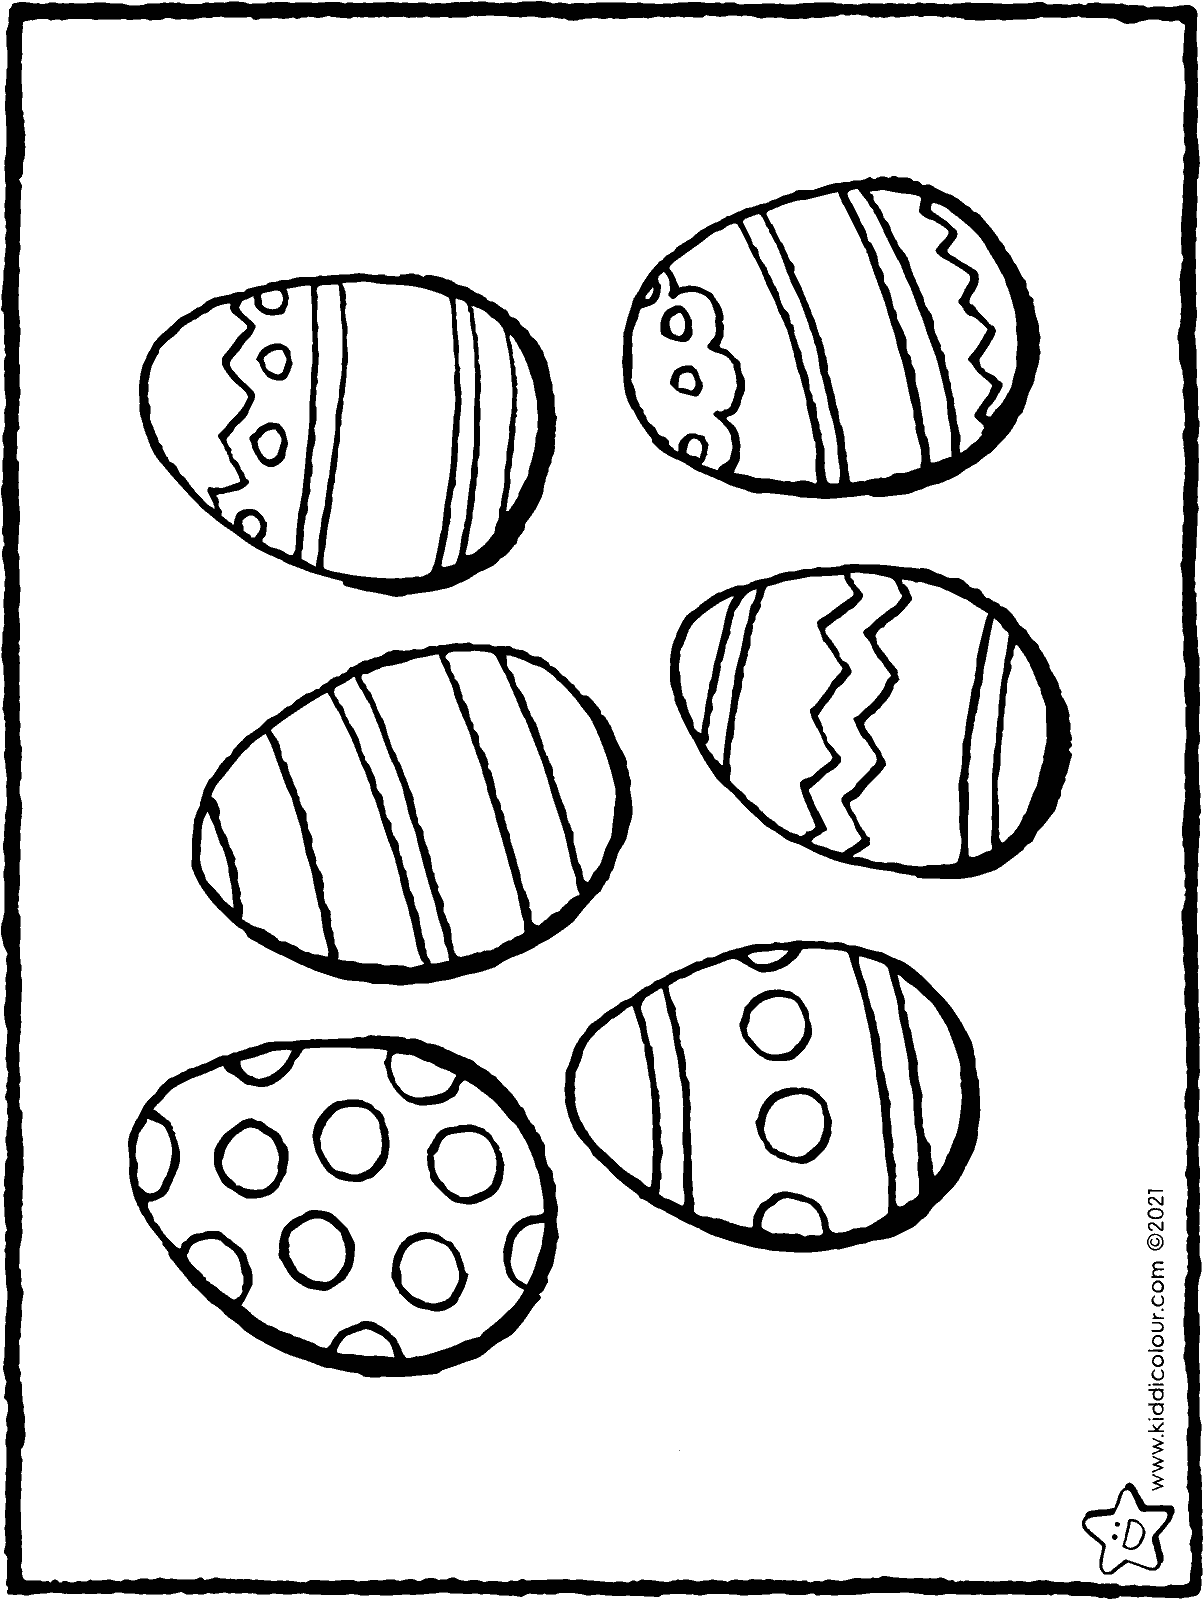 6 Easter eggs colouring page drawing picture 01H